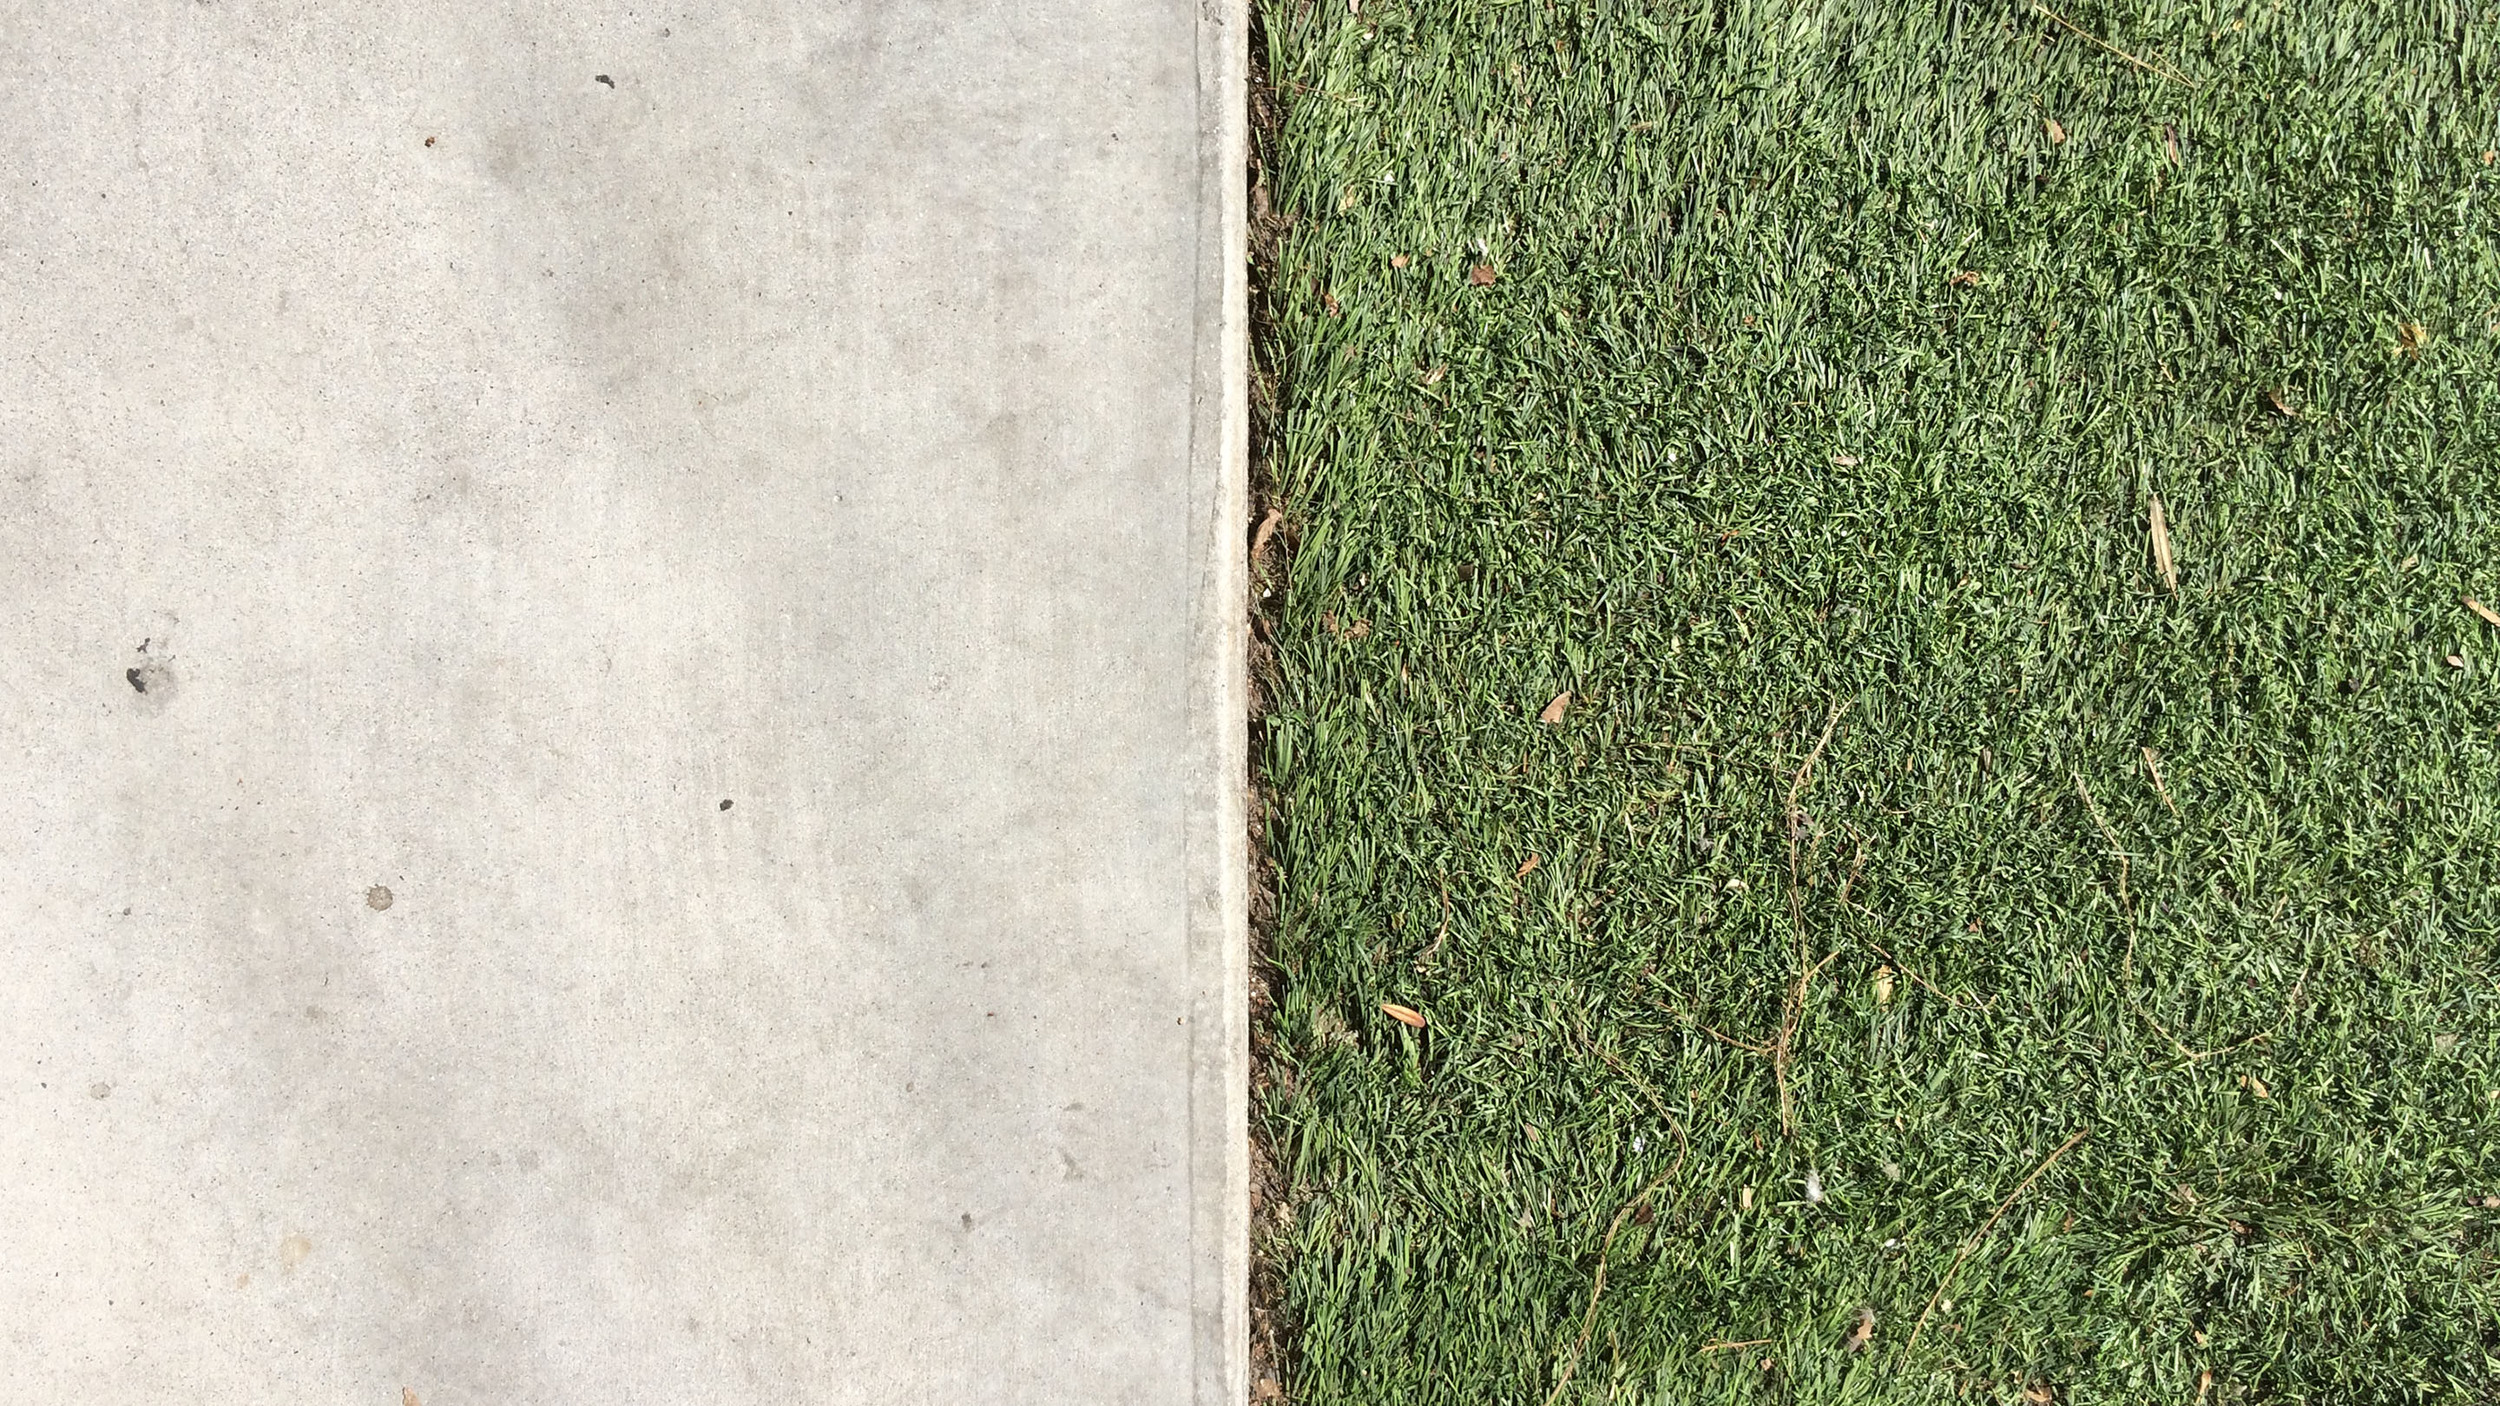 A hard divide between concrete and synthetic turf on a sidewalk on 11th Street in the South Park neighborhood of Downtown Los Angeles. (Photograph by Ian Besler)